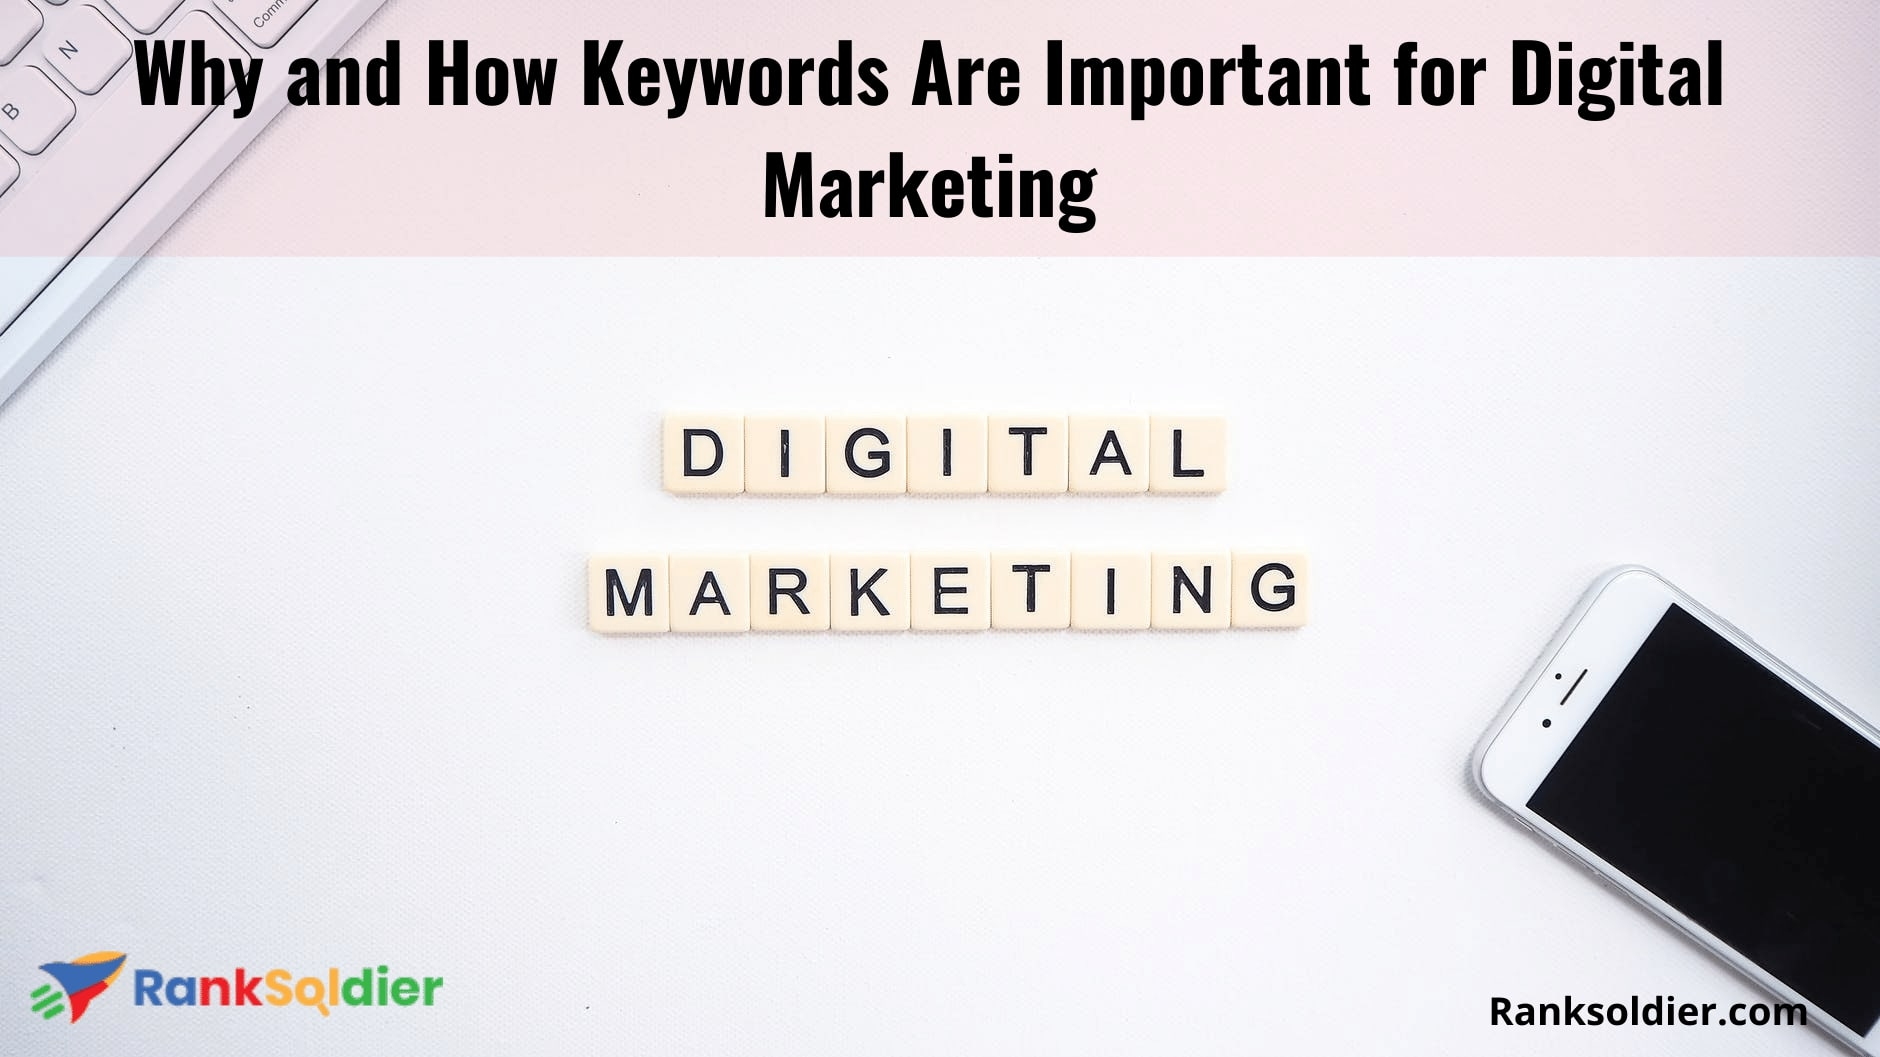 Why and How Keywords Are Important for Digital Marketing